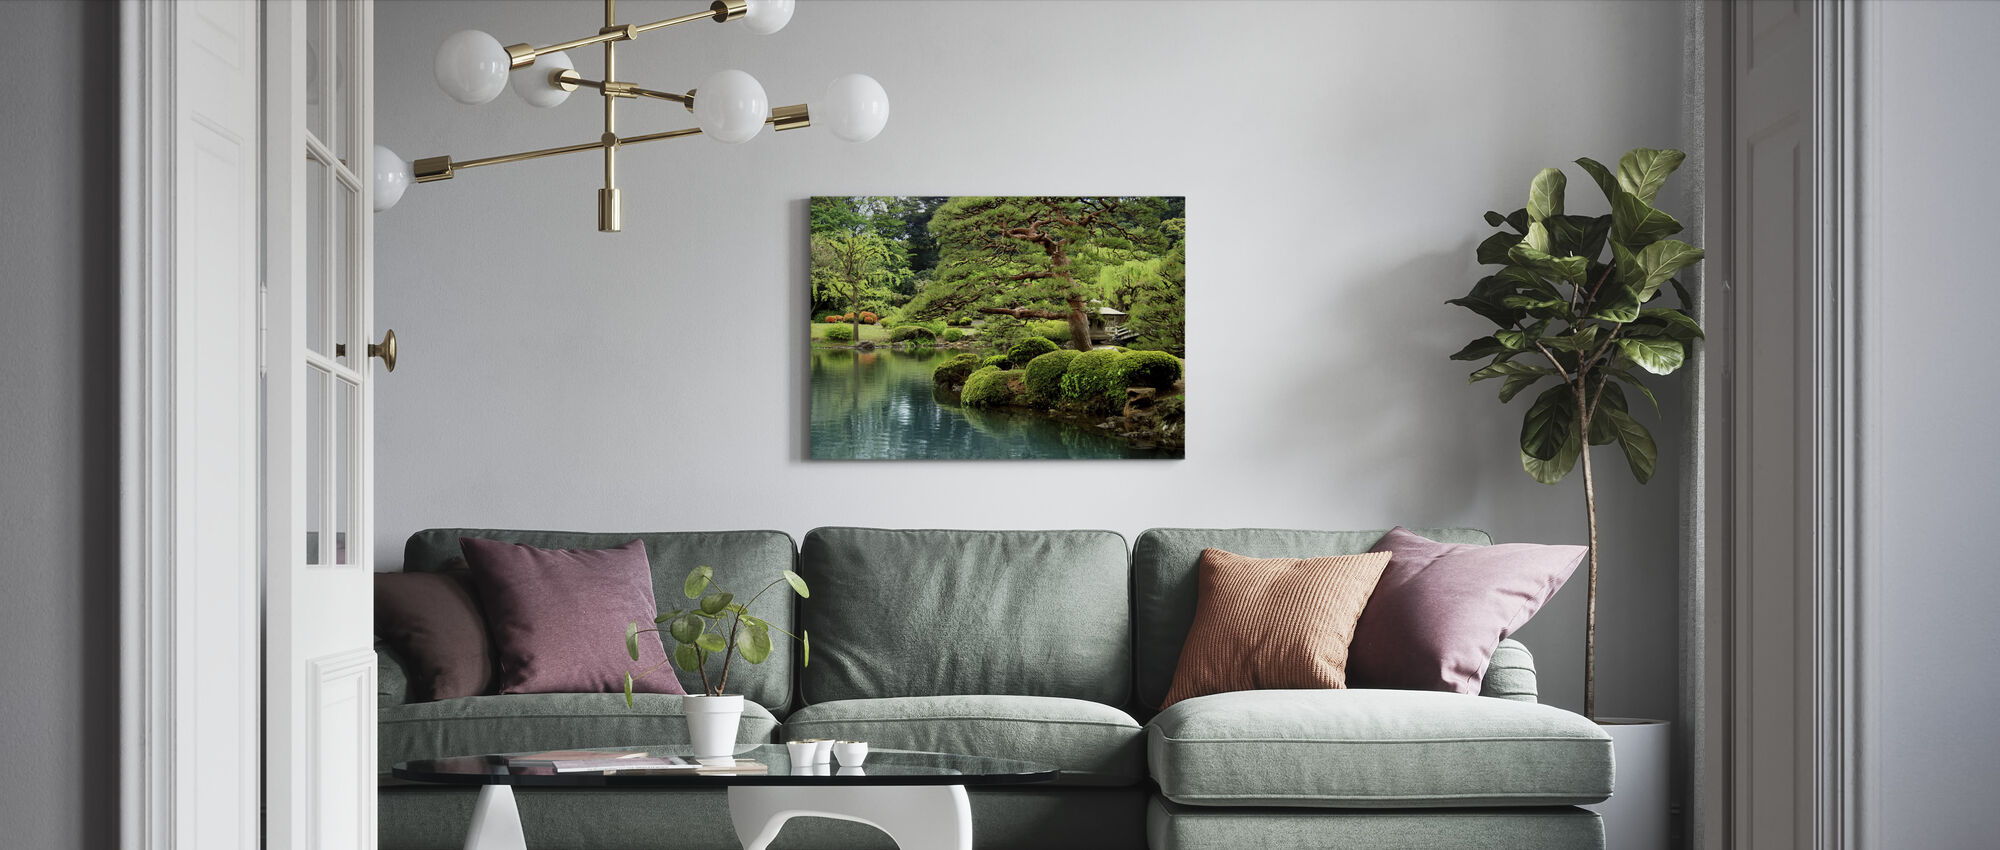 Calm Zen Lake and Bonsai Trees in Tokyo Garden - Canvas print - Living Room